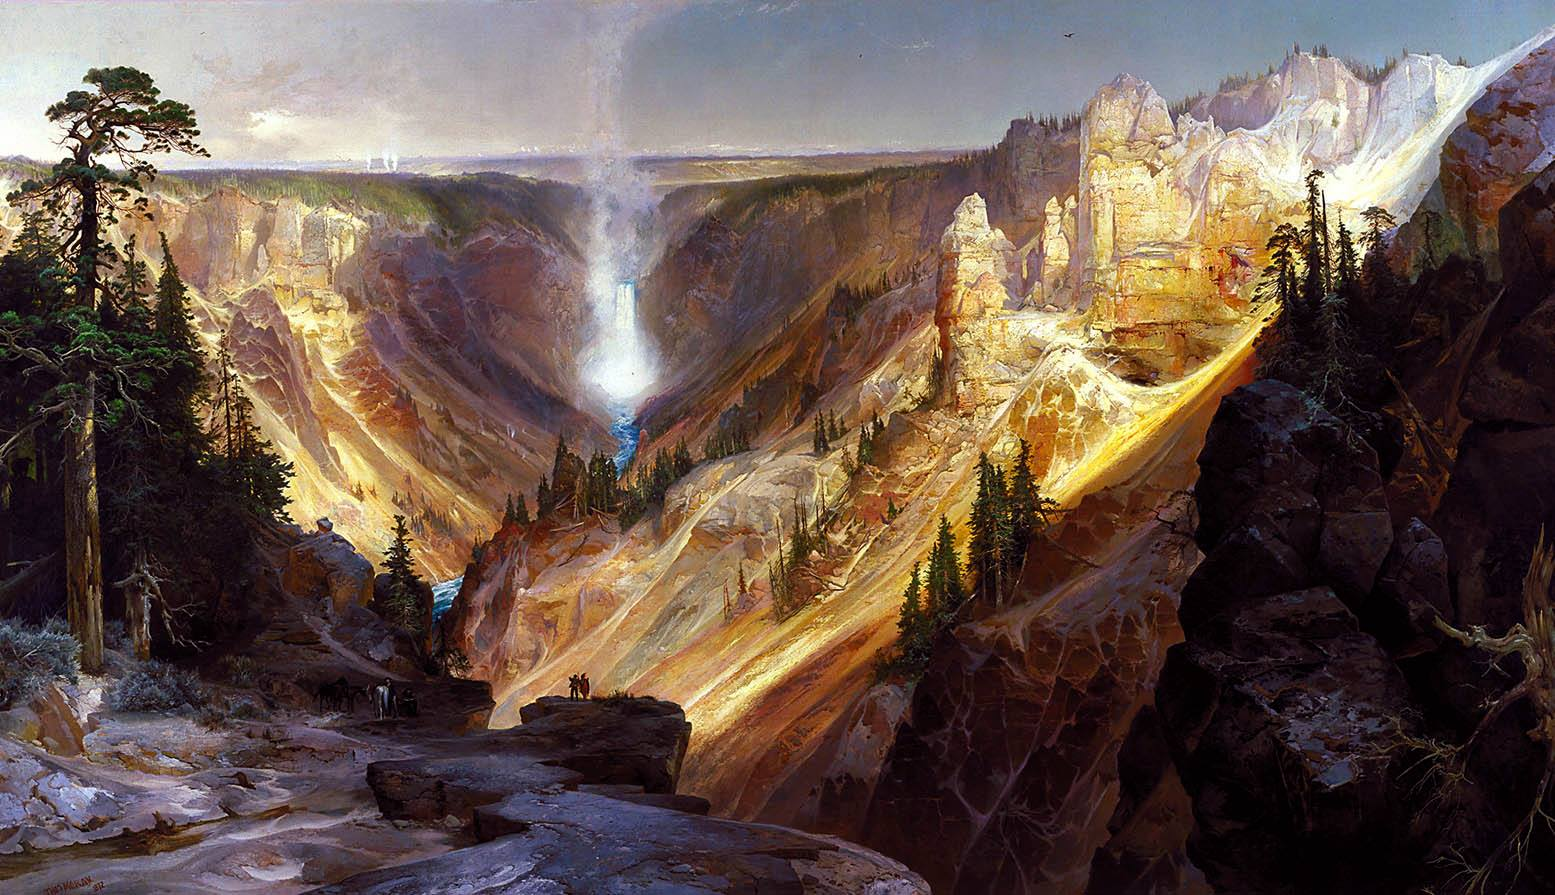 #OnThisDay in 1837 famed landscape painter Thomas Moran was born. Moran's  paintings captured landscapes unknown then to a predominantly eastern US  population and helped bring back glimpses of the treasures that Yellowstone held after the Hayden Expedition in 1871. https://t.co/35QOZIkzGO